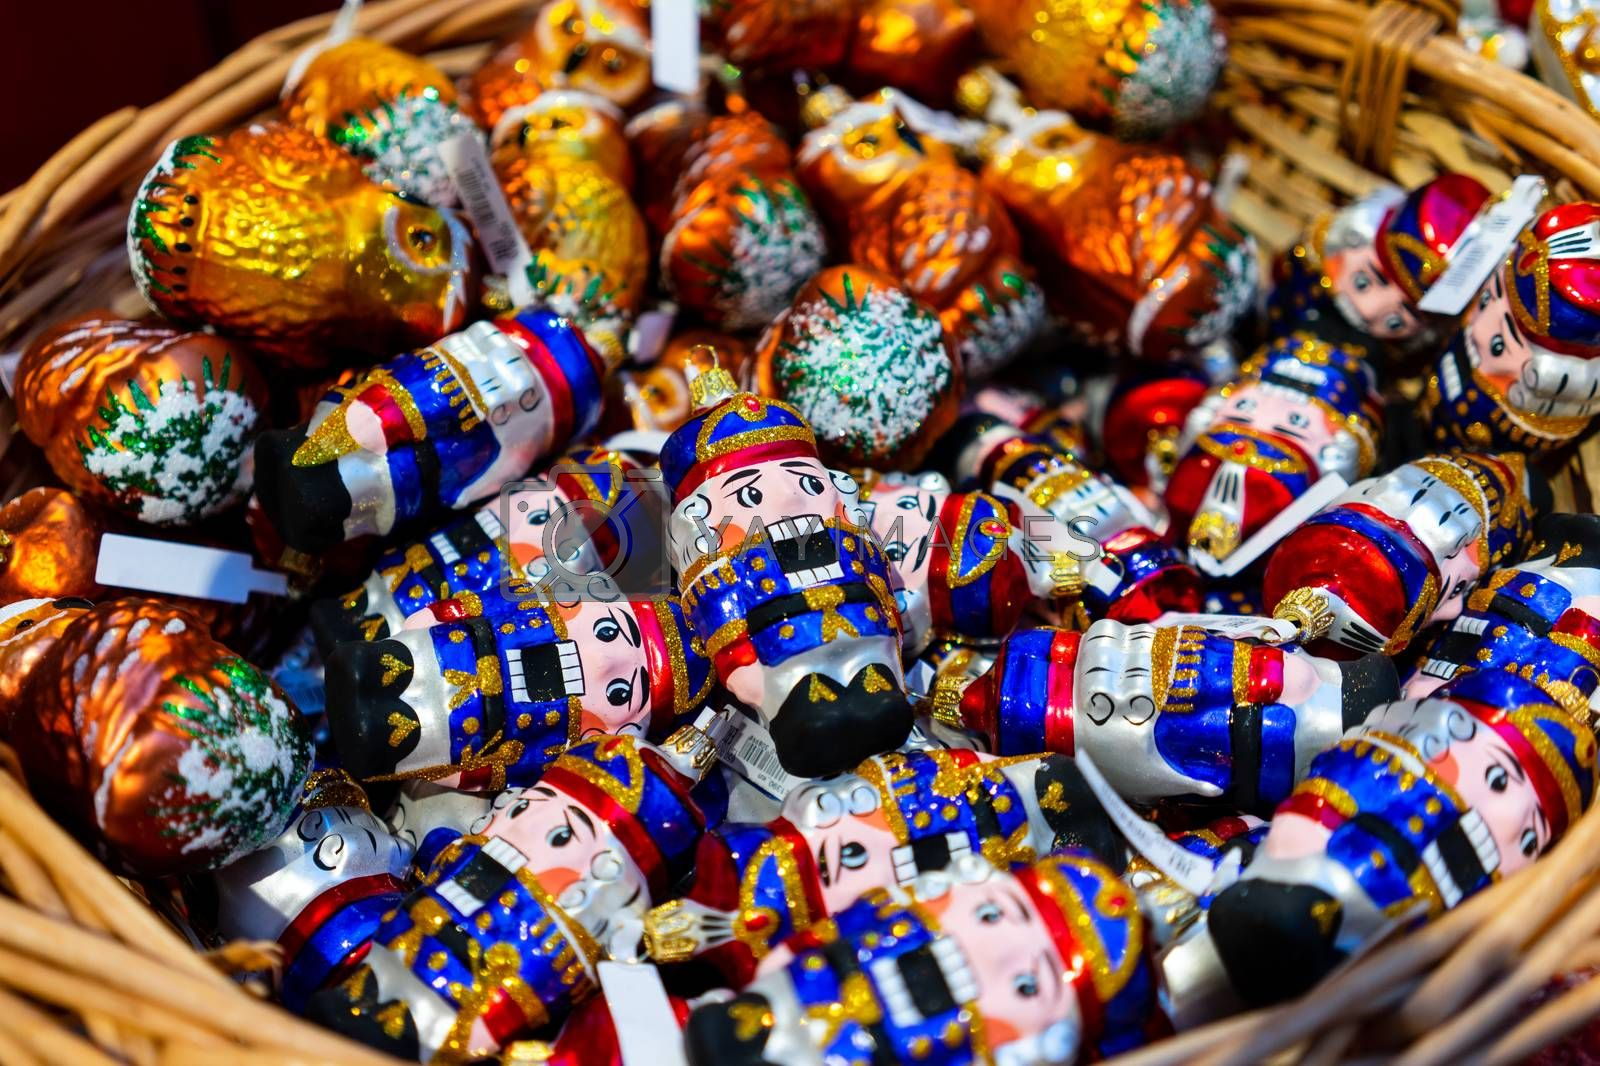 27 November 2018, Moscow, Russia. Christmas tree toys in the shopping center GUM on red square in Moscow.